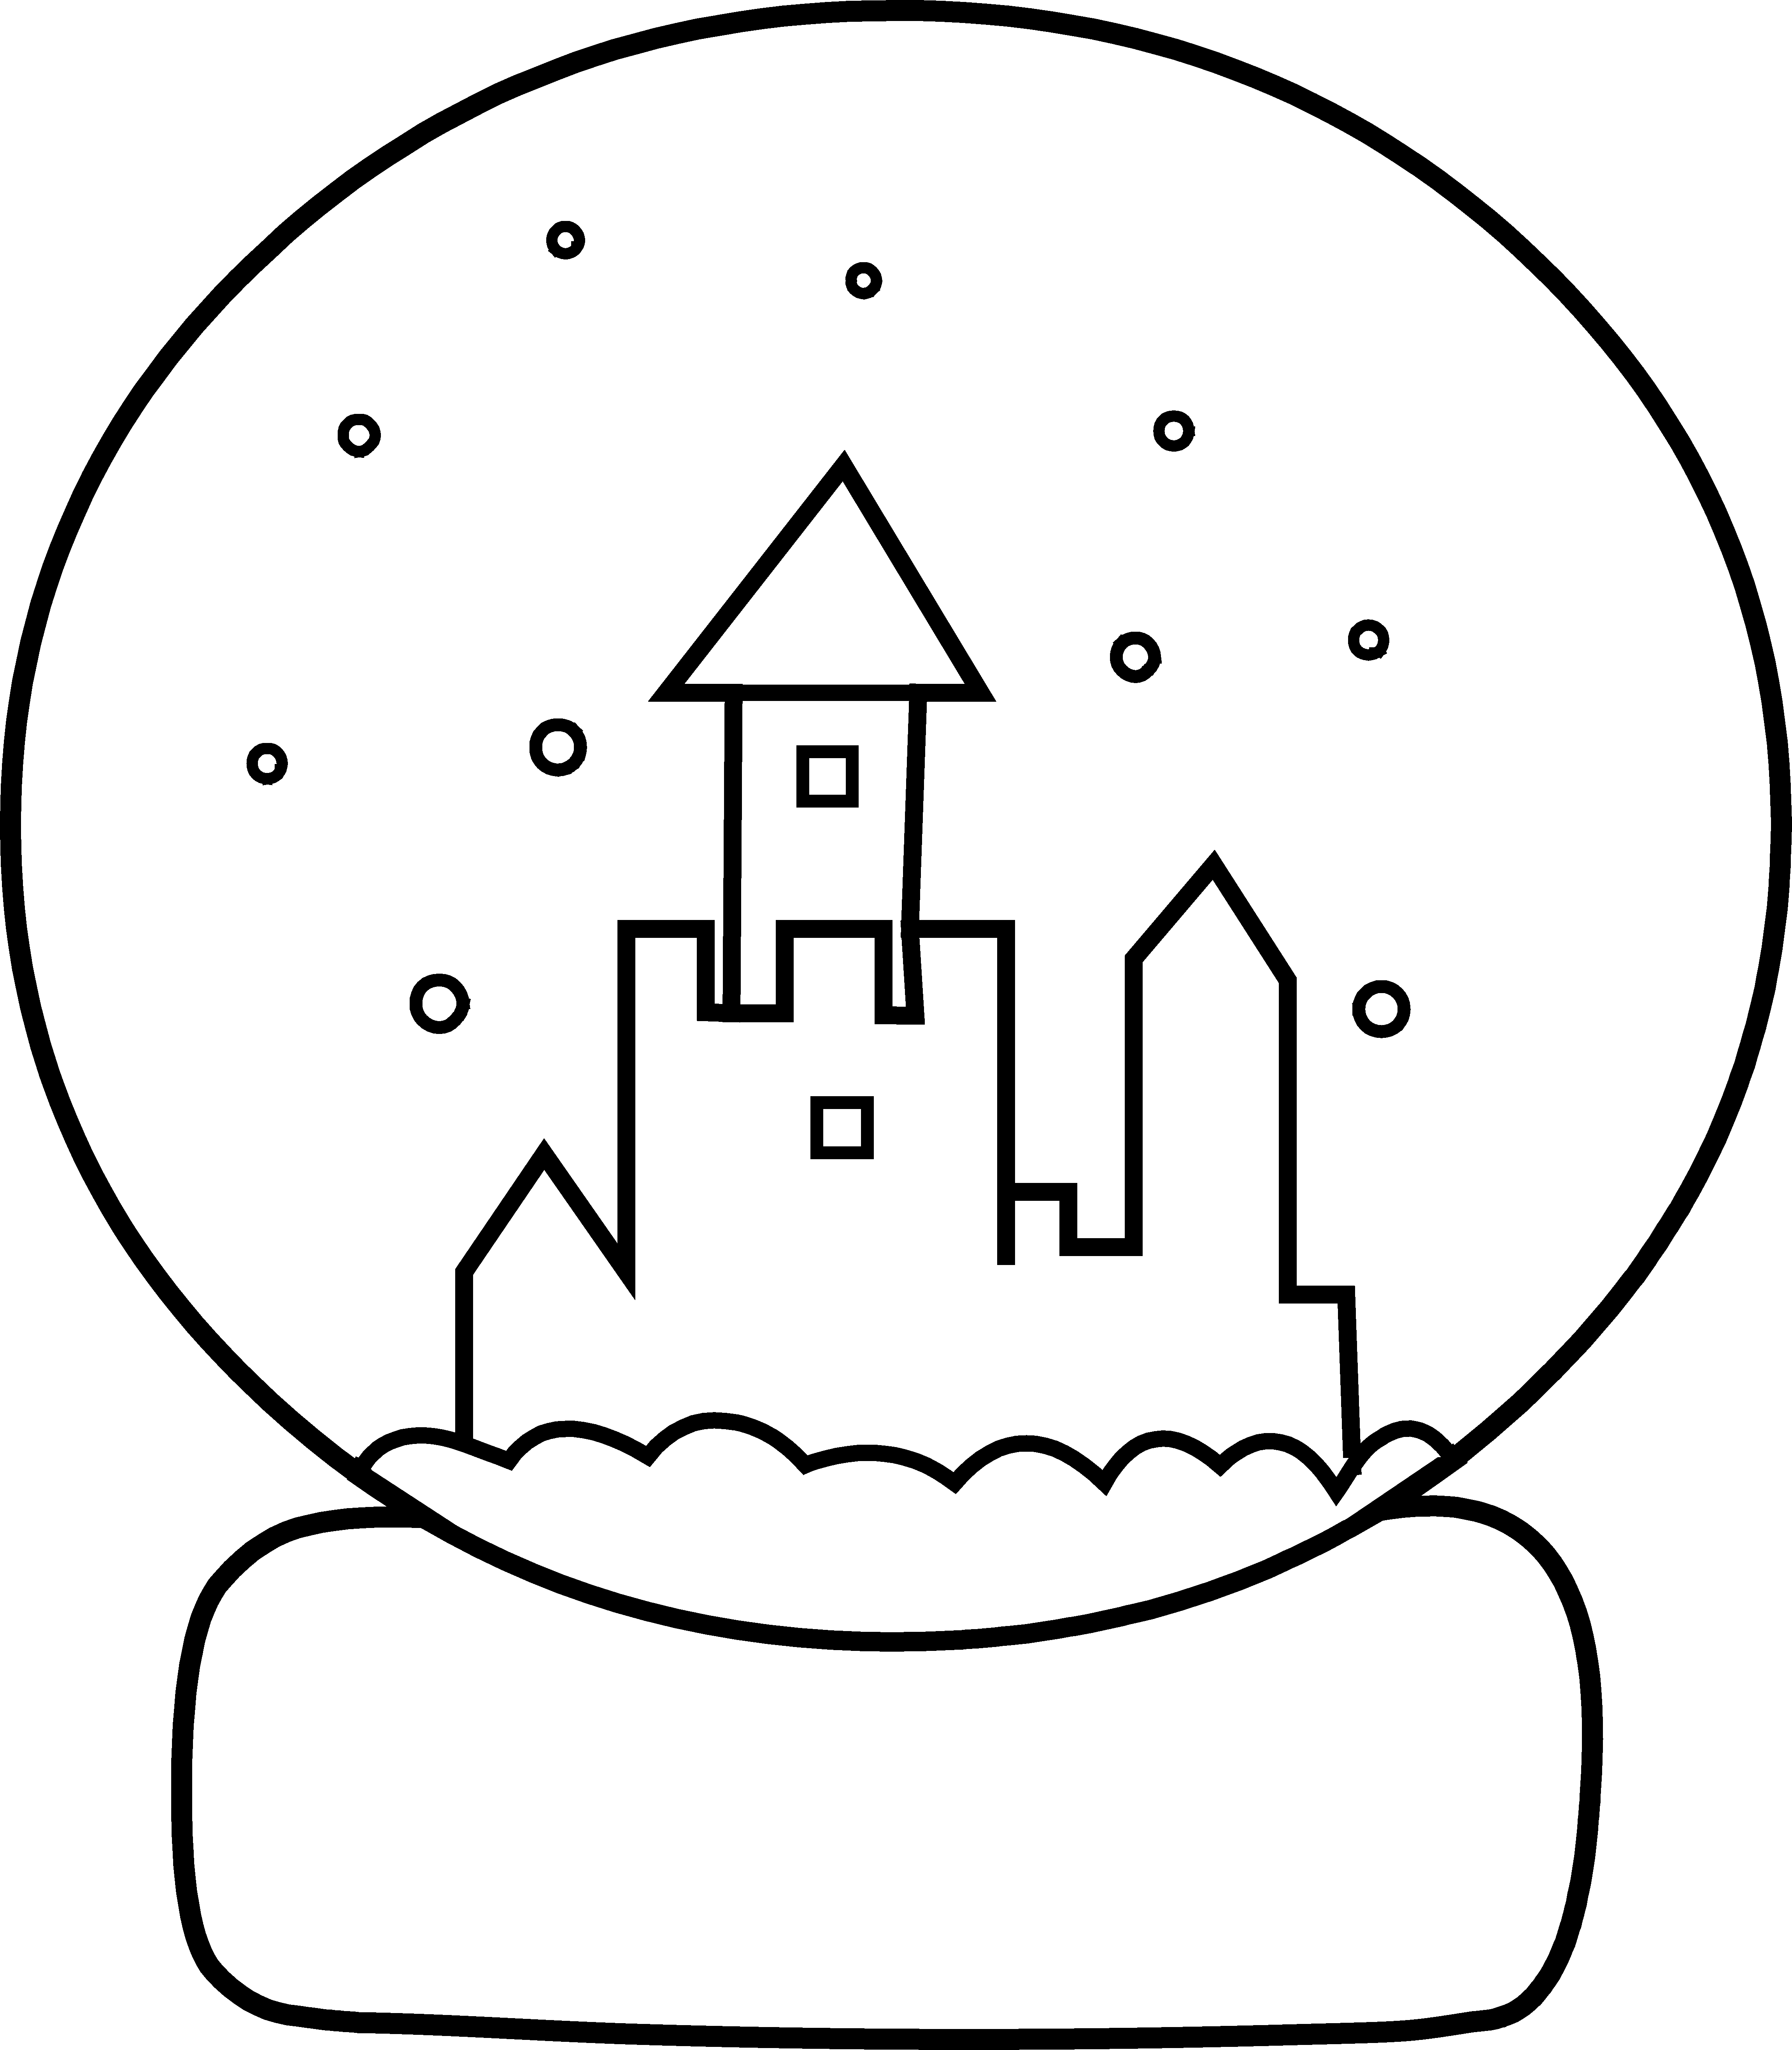 snow globe coloring page - globe line art